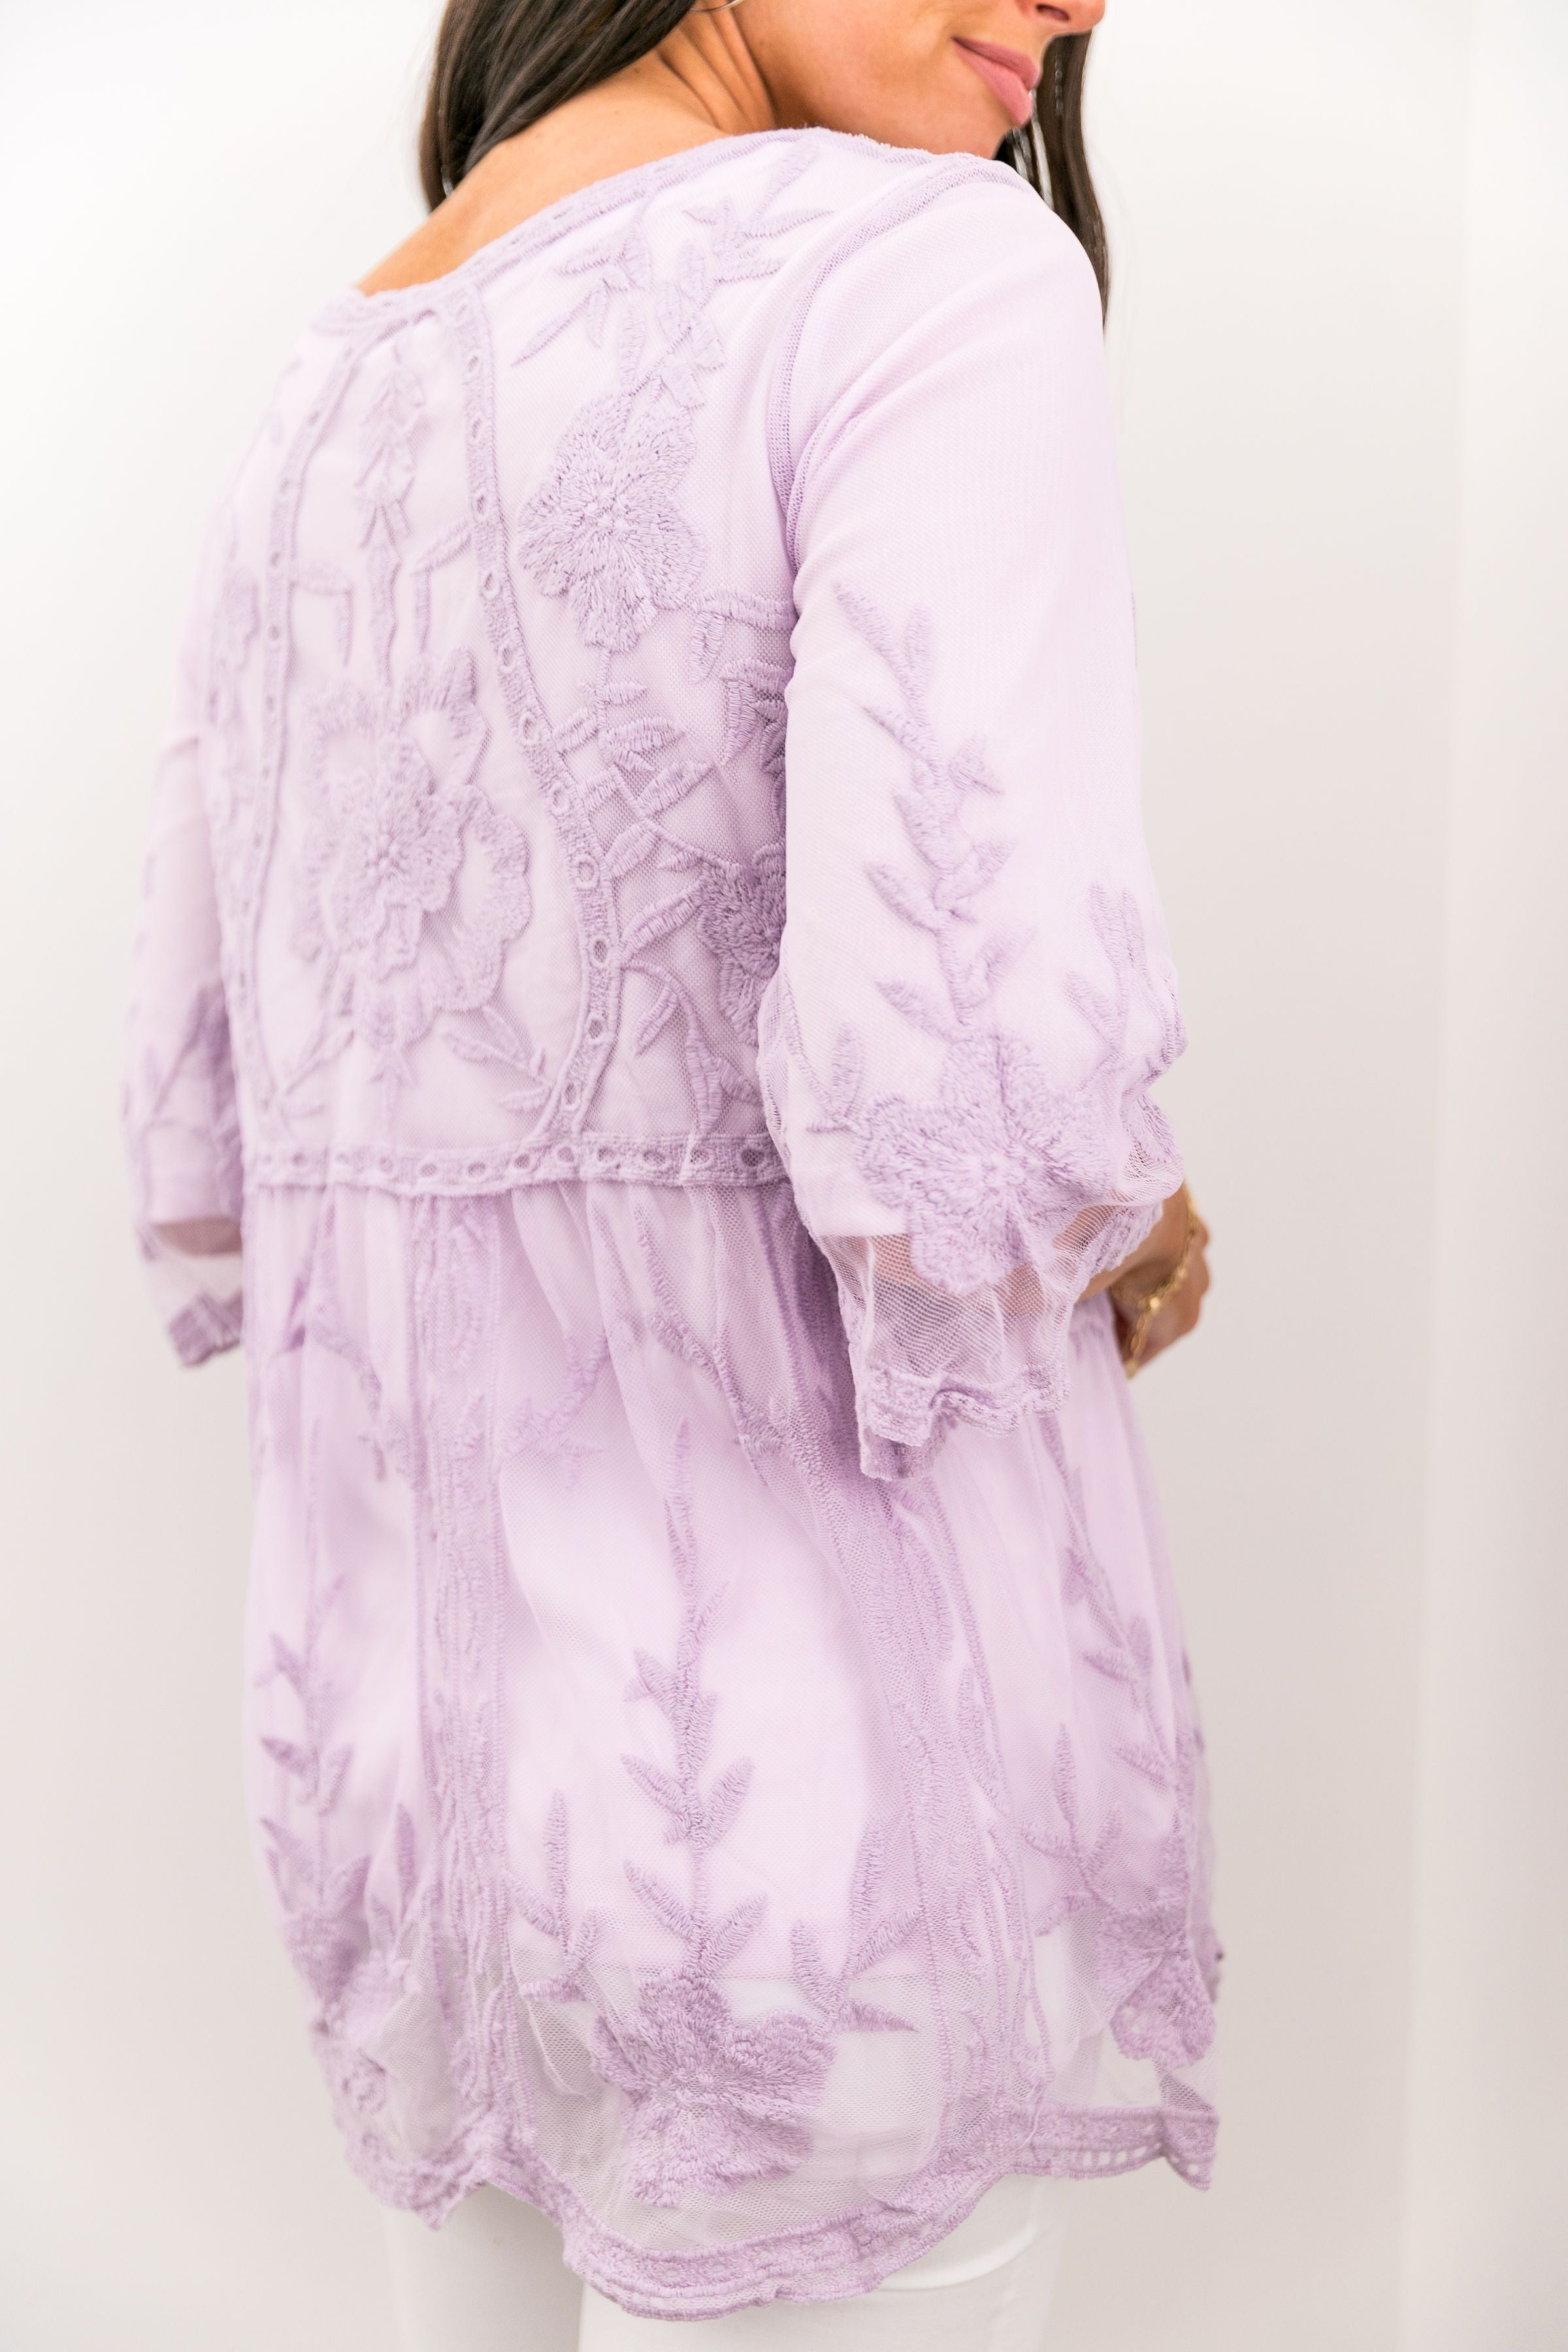 Flirty Lace Blouse In Lavender